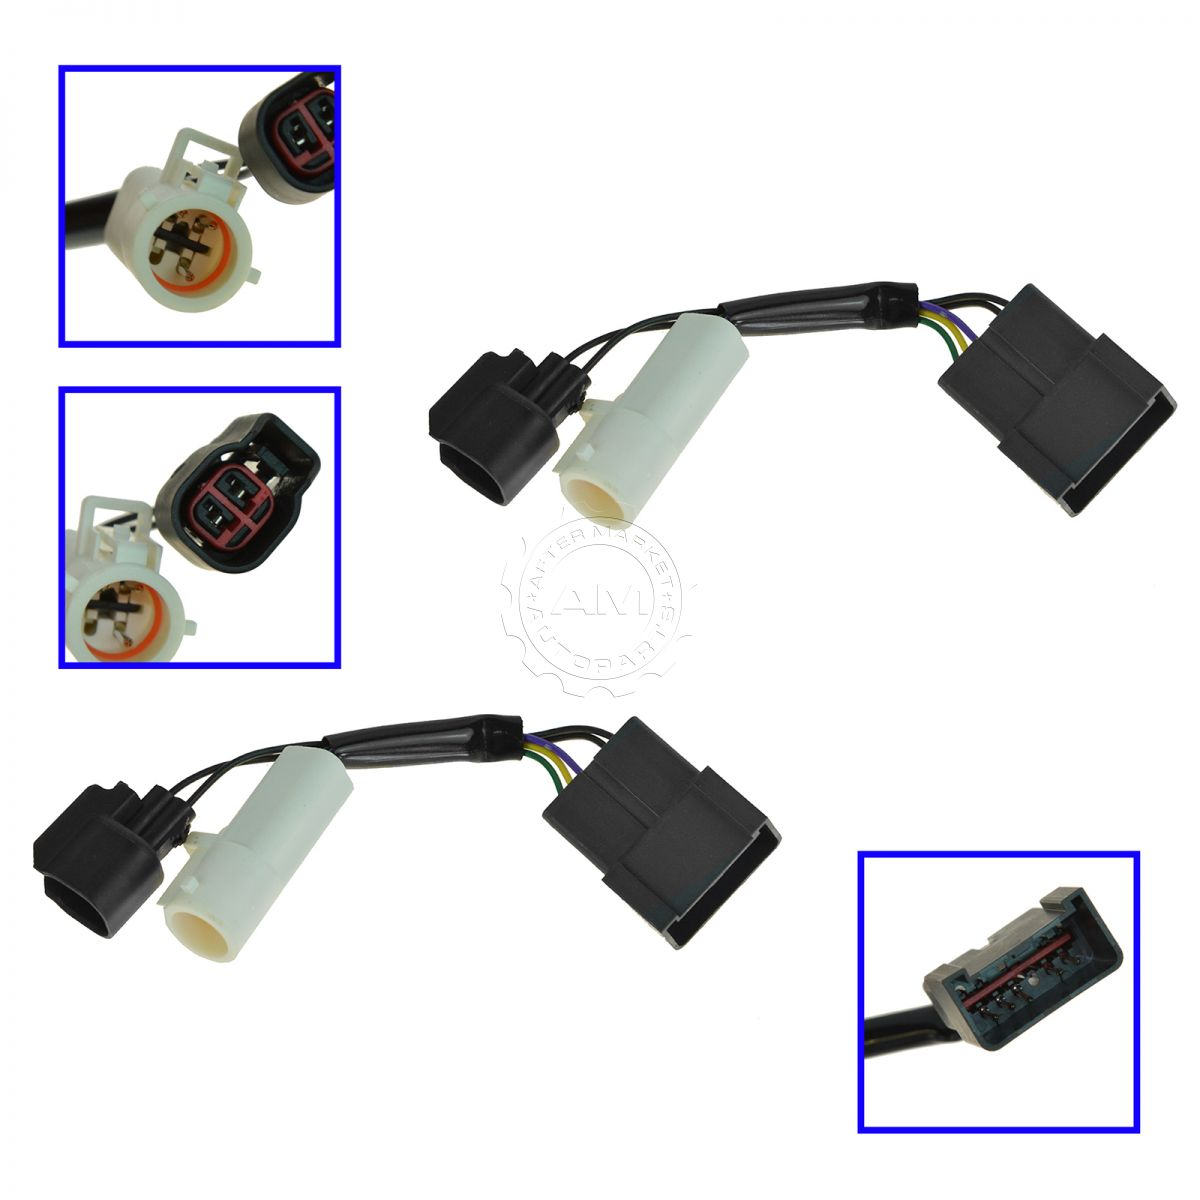 mirrors power heated upgrade harness adapter lh rh pair set for 00 rh ebay  com Ford 7 3 Wiring Harness 2002 Mustang V8 Wiring Harness